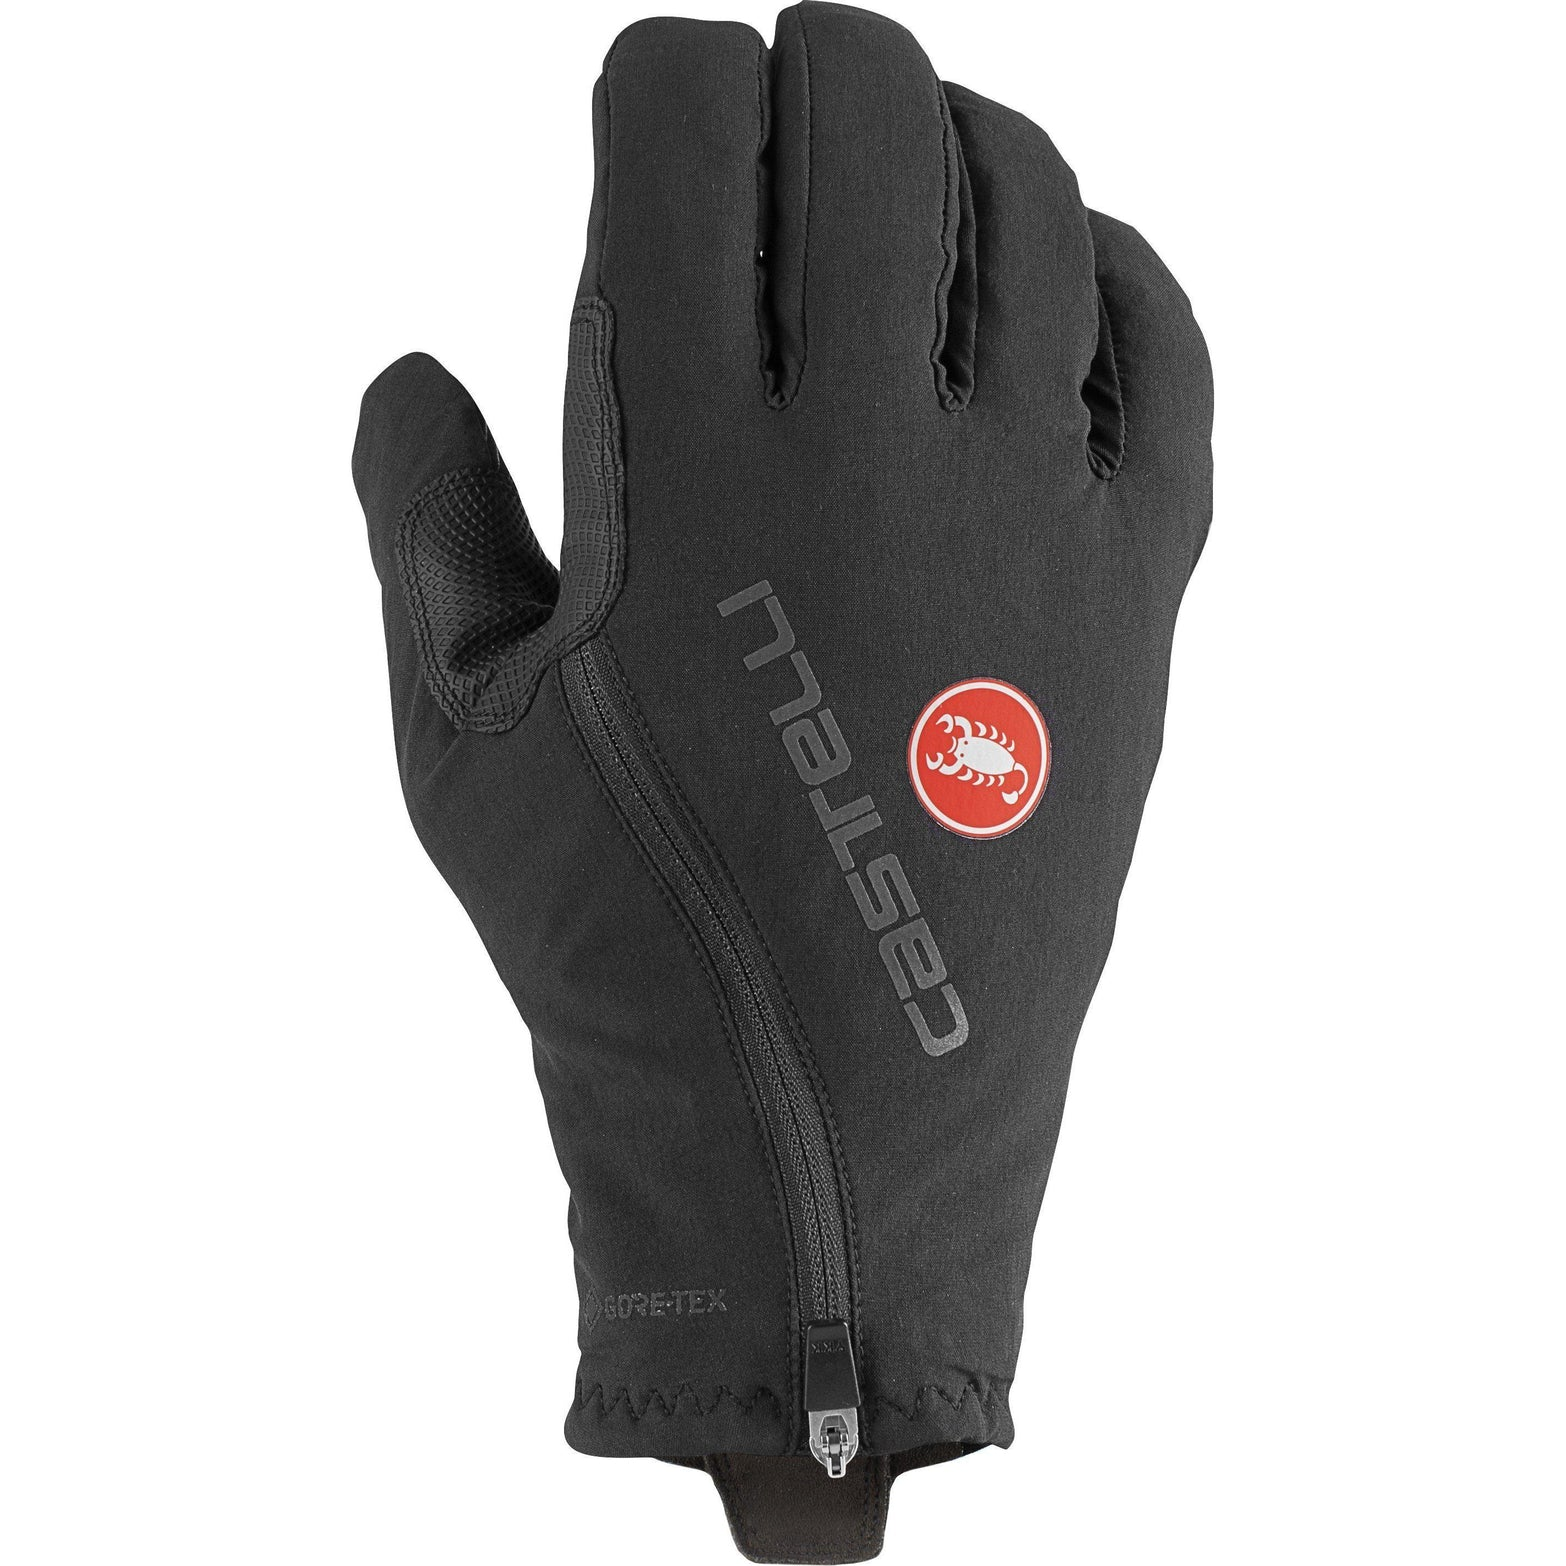 Castelli-Castelli Espresso GT Gloves-Black-XS-CS205320101-saddleback-elite-performance-cycling